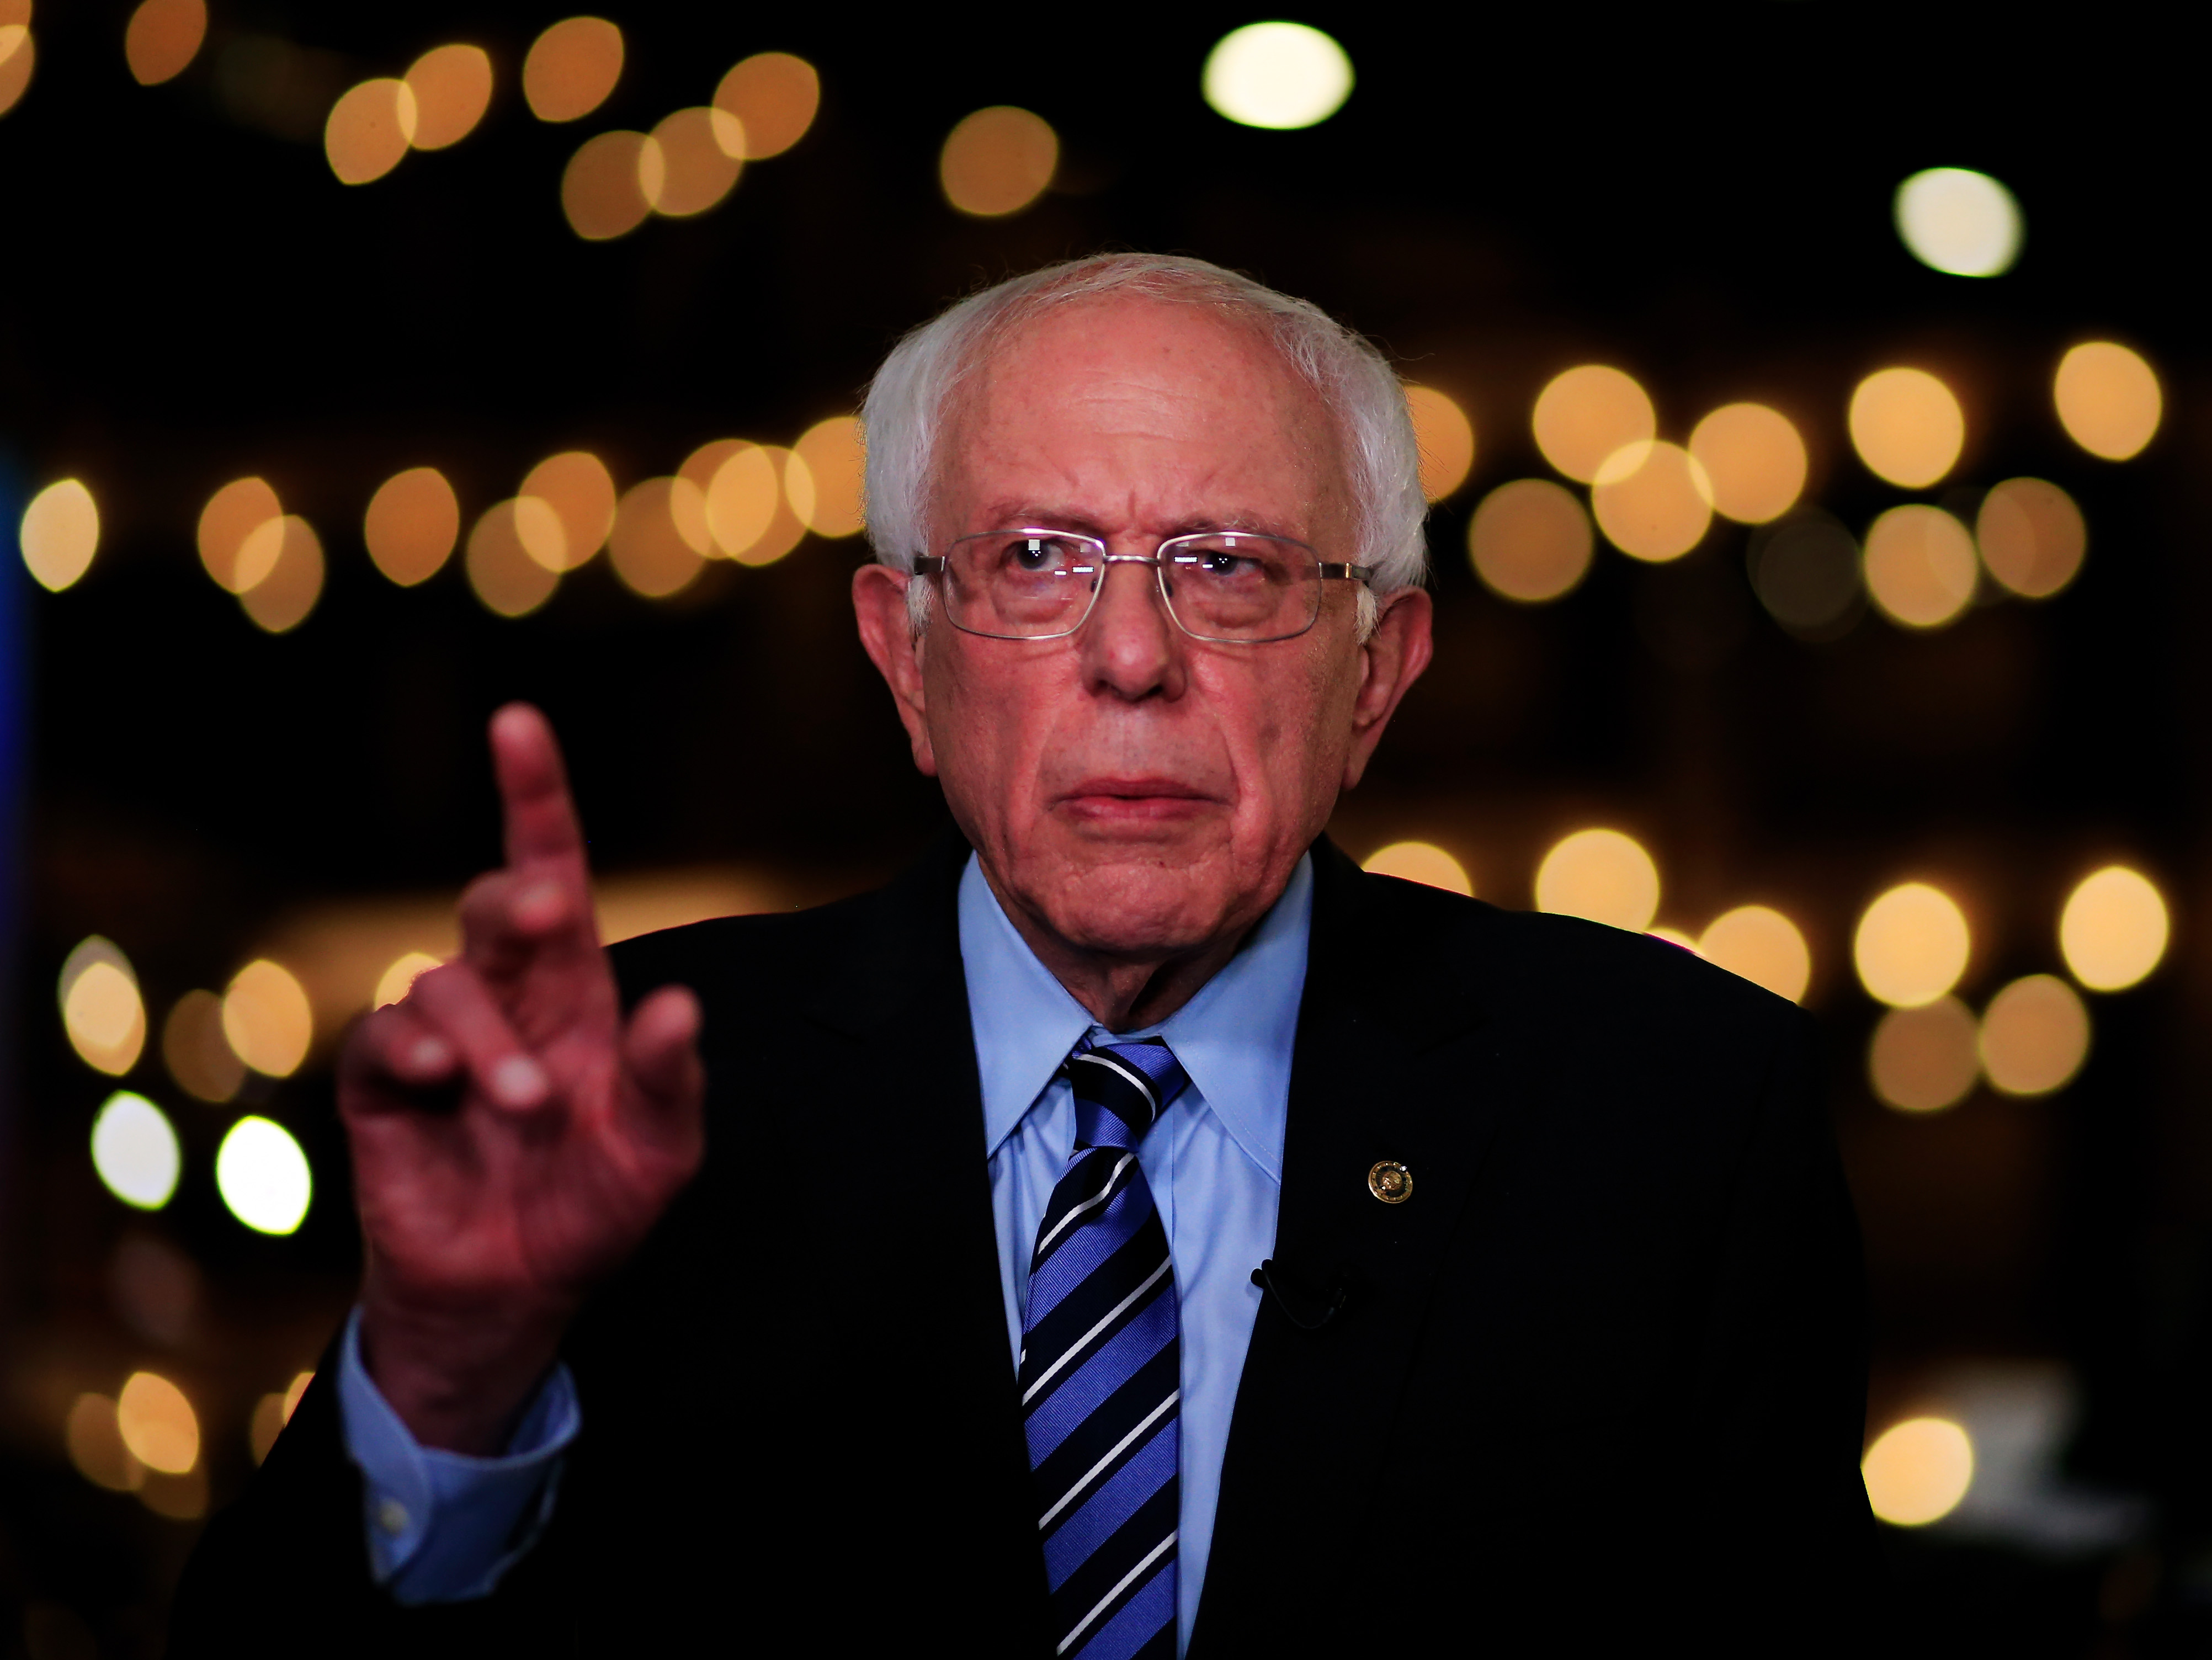 Antichrist' Bernie Sanders Lists Hit Parade of Haters   Fortune